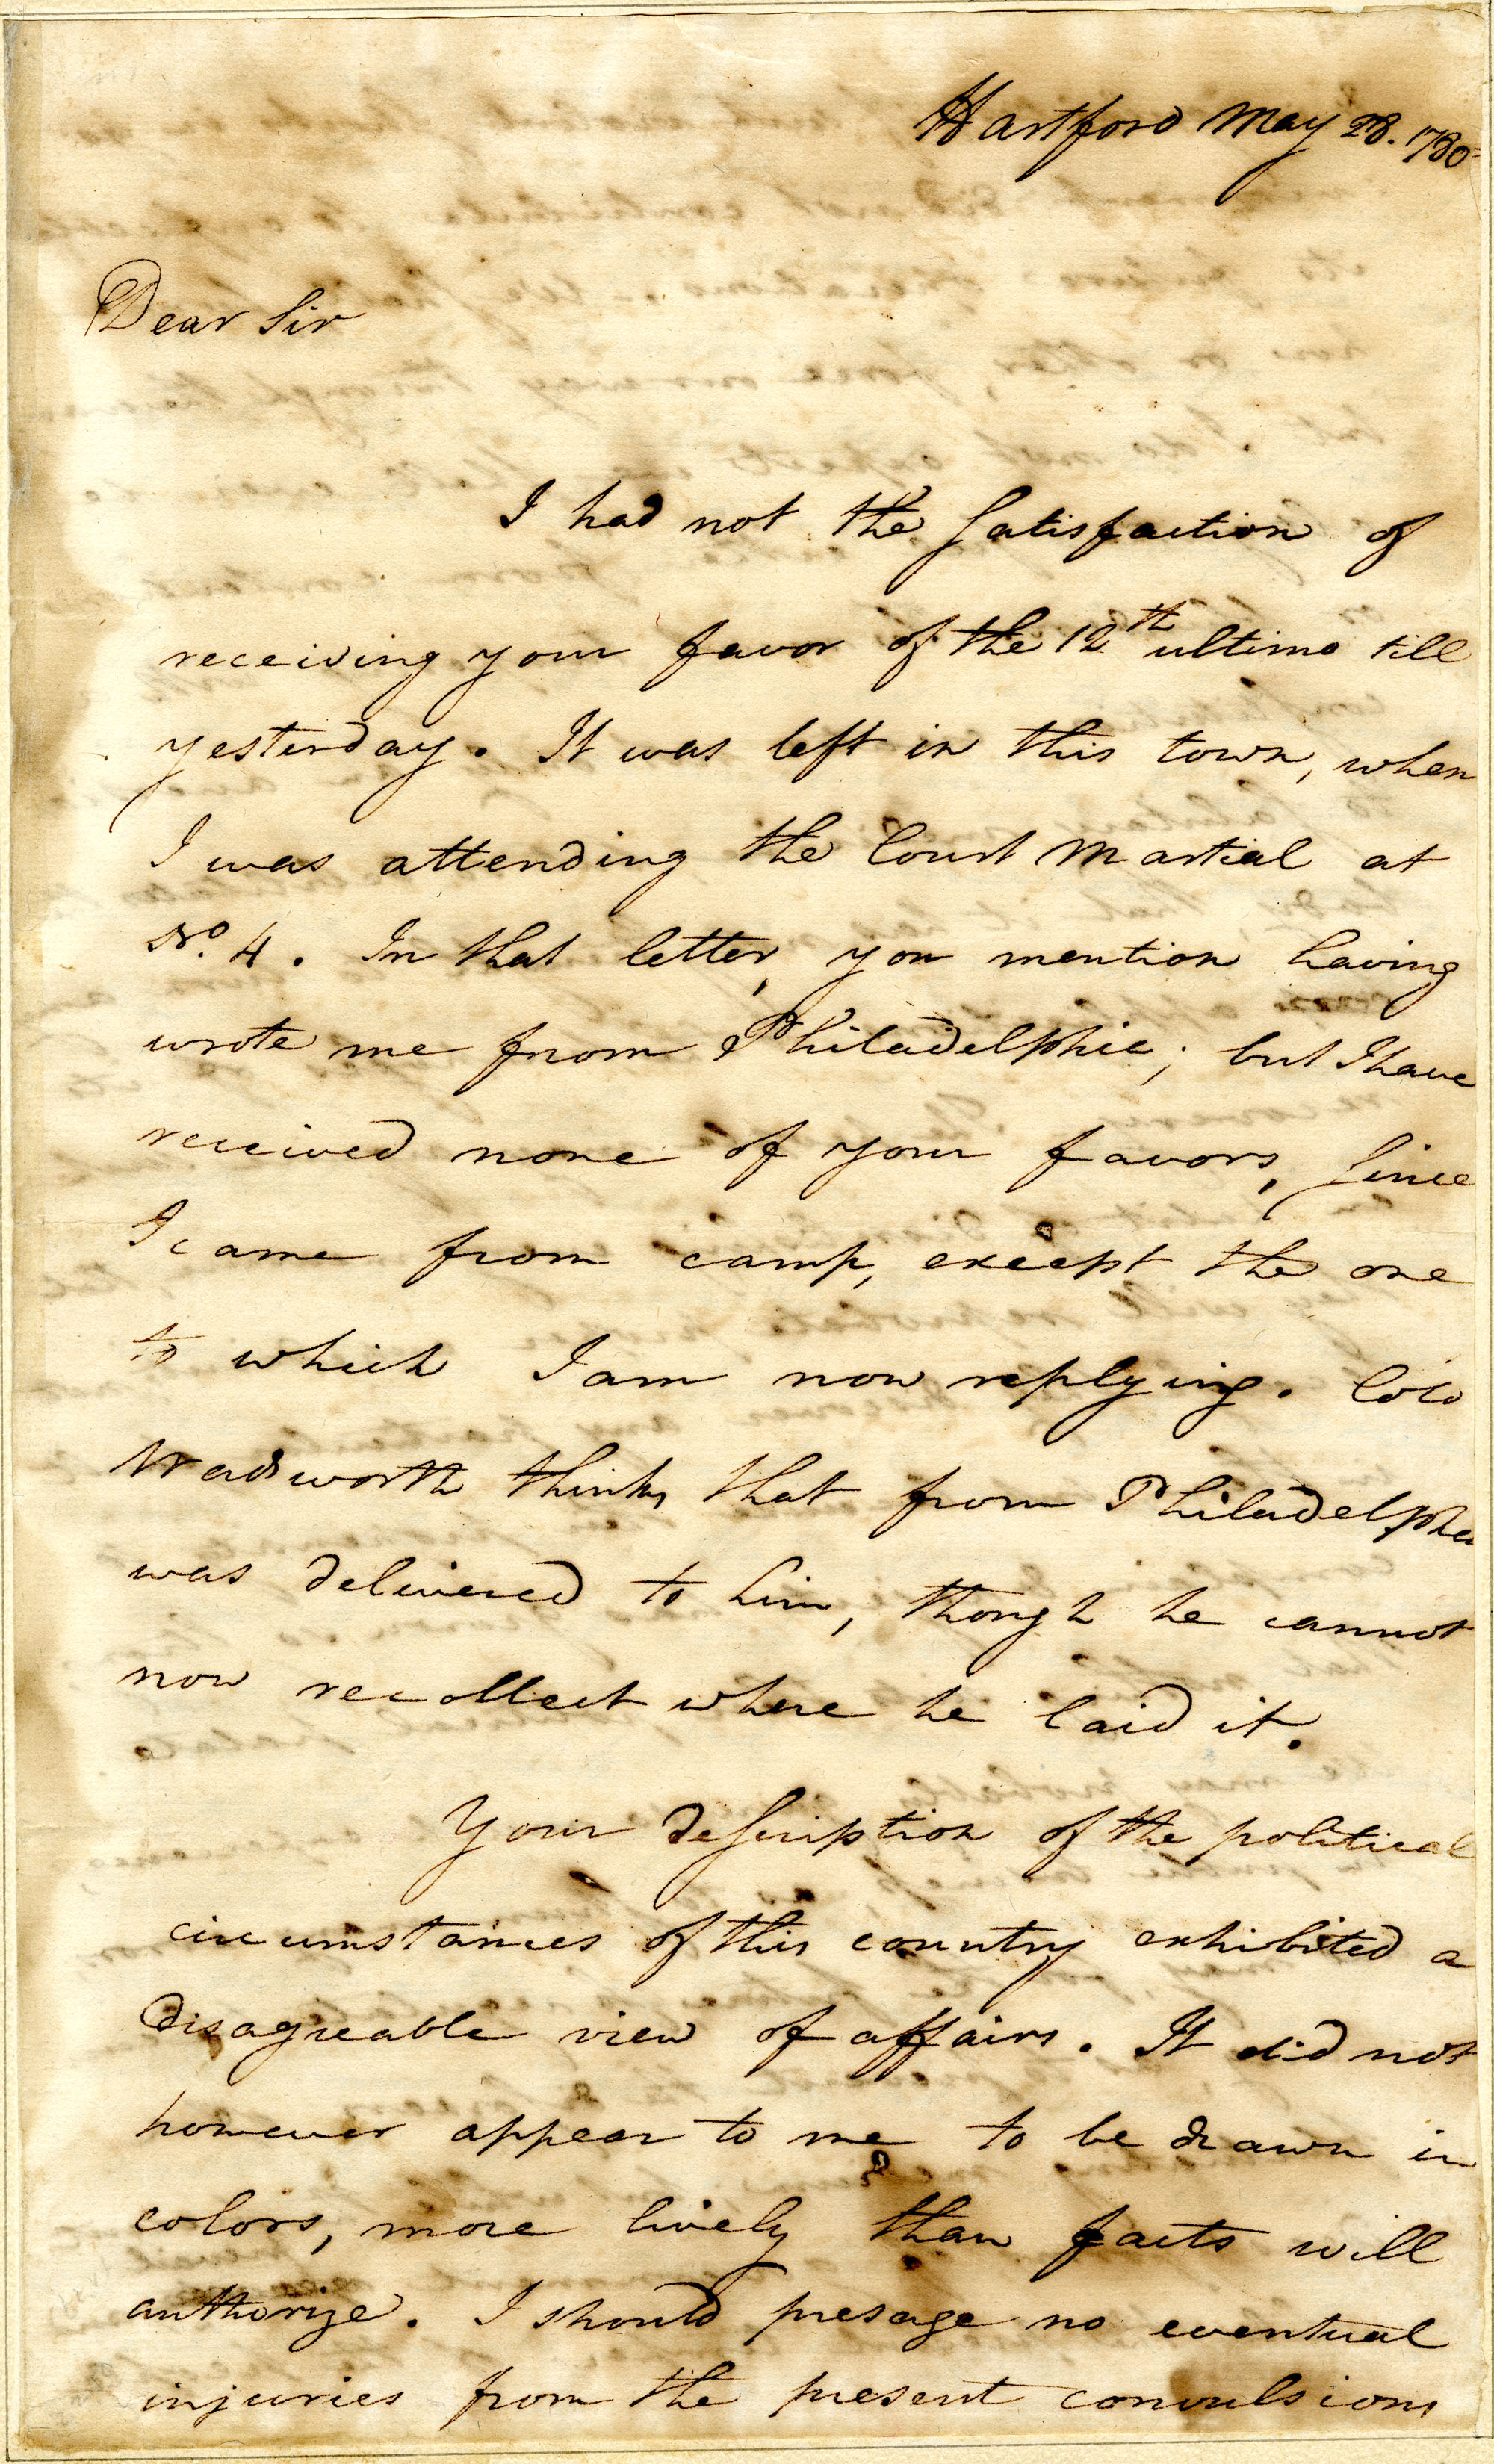 Letter from Royal Flint to Nathanael Greene, Page 1